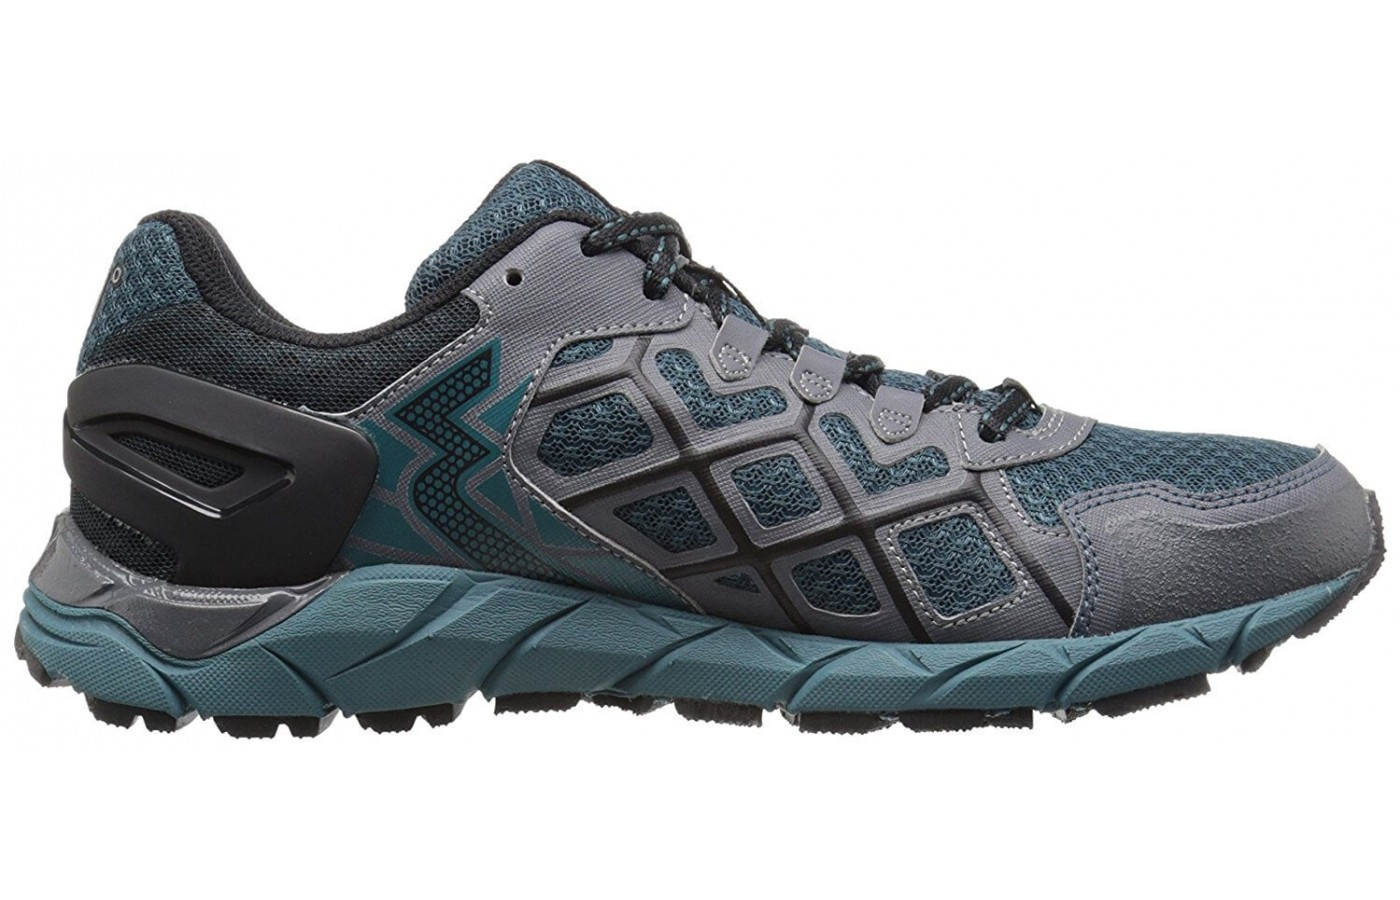 361 Ortega is a versatile shoe that can transition from road to trail